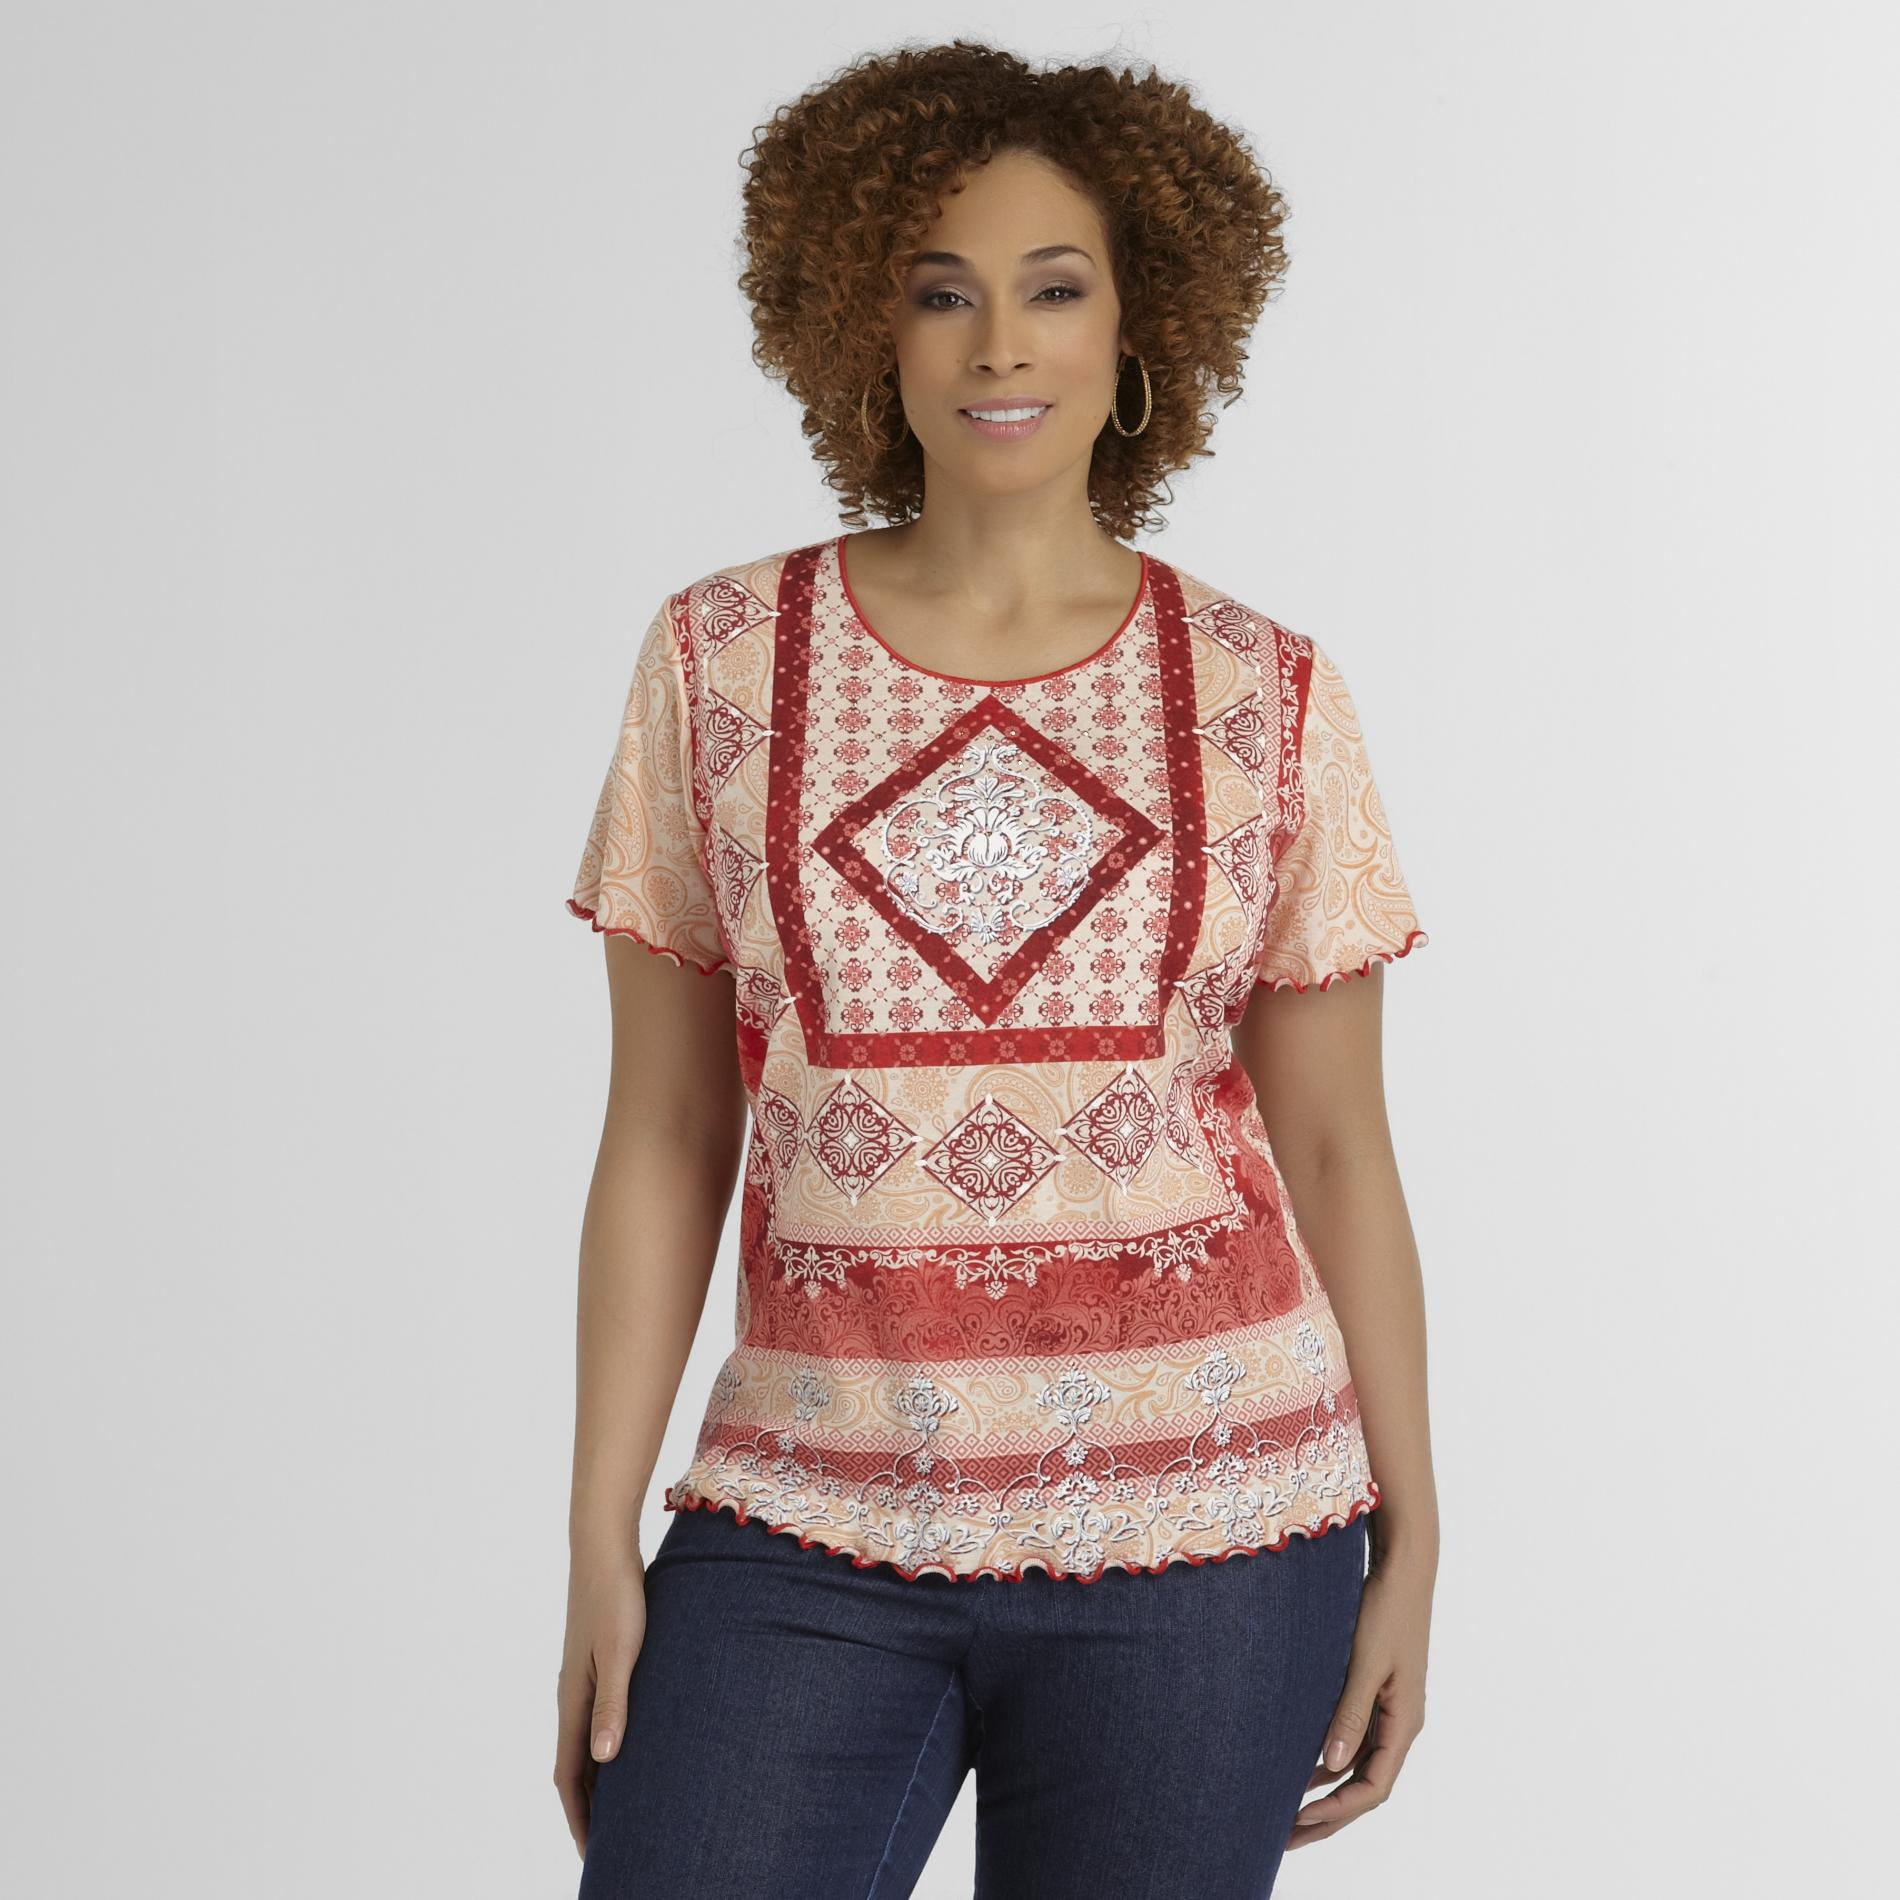 Basic Editions Women's Plus T-Shirt -  Scarf Print at Kmart.com